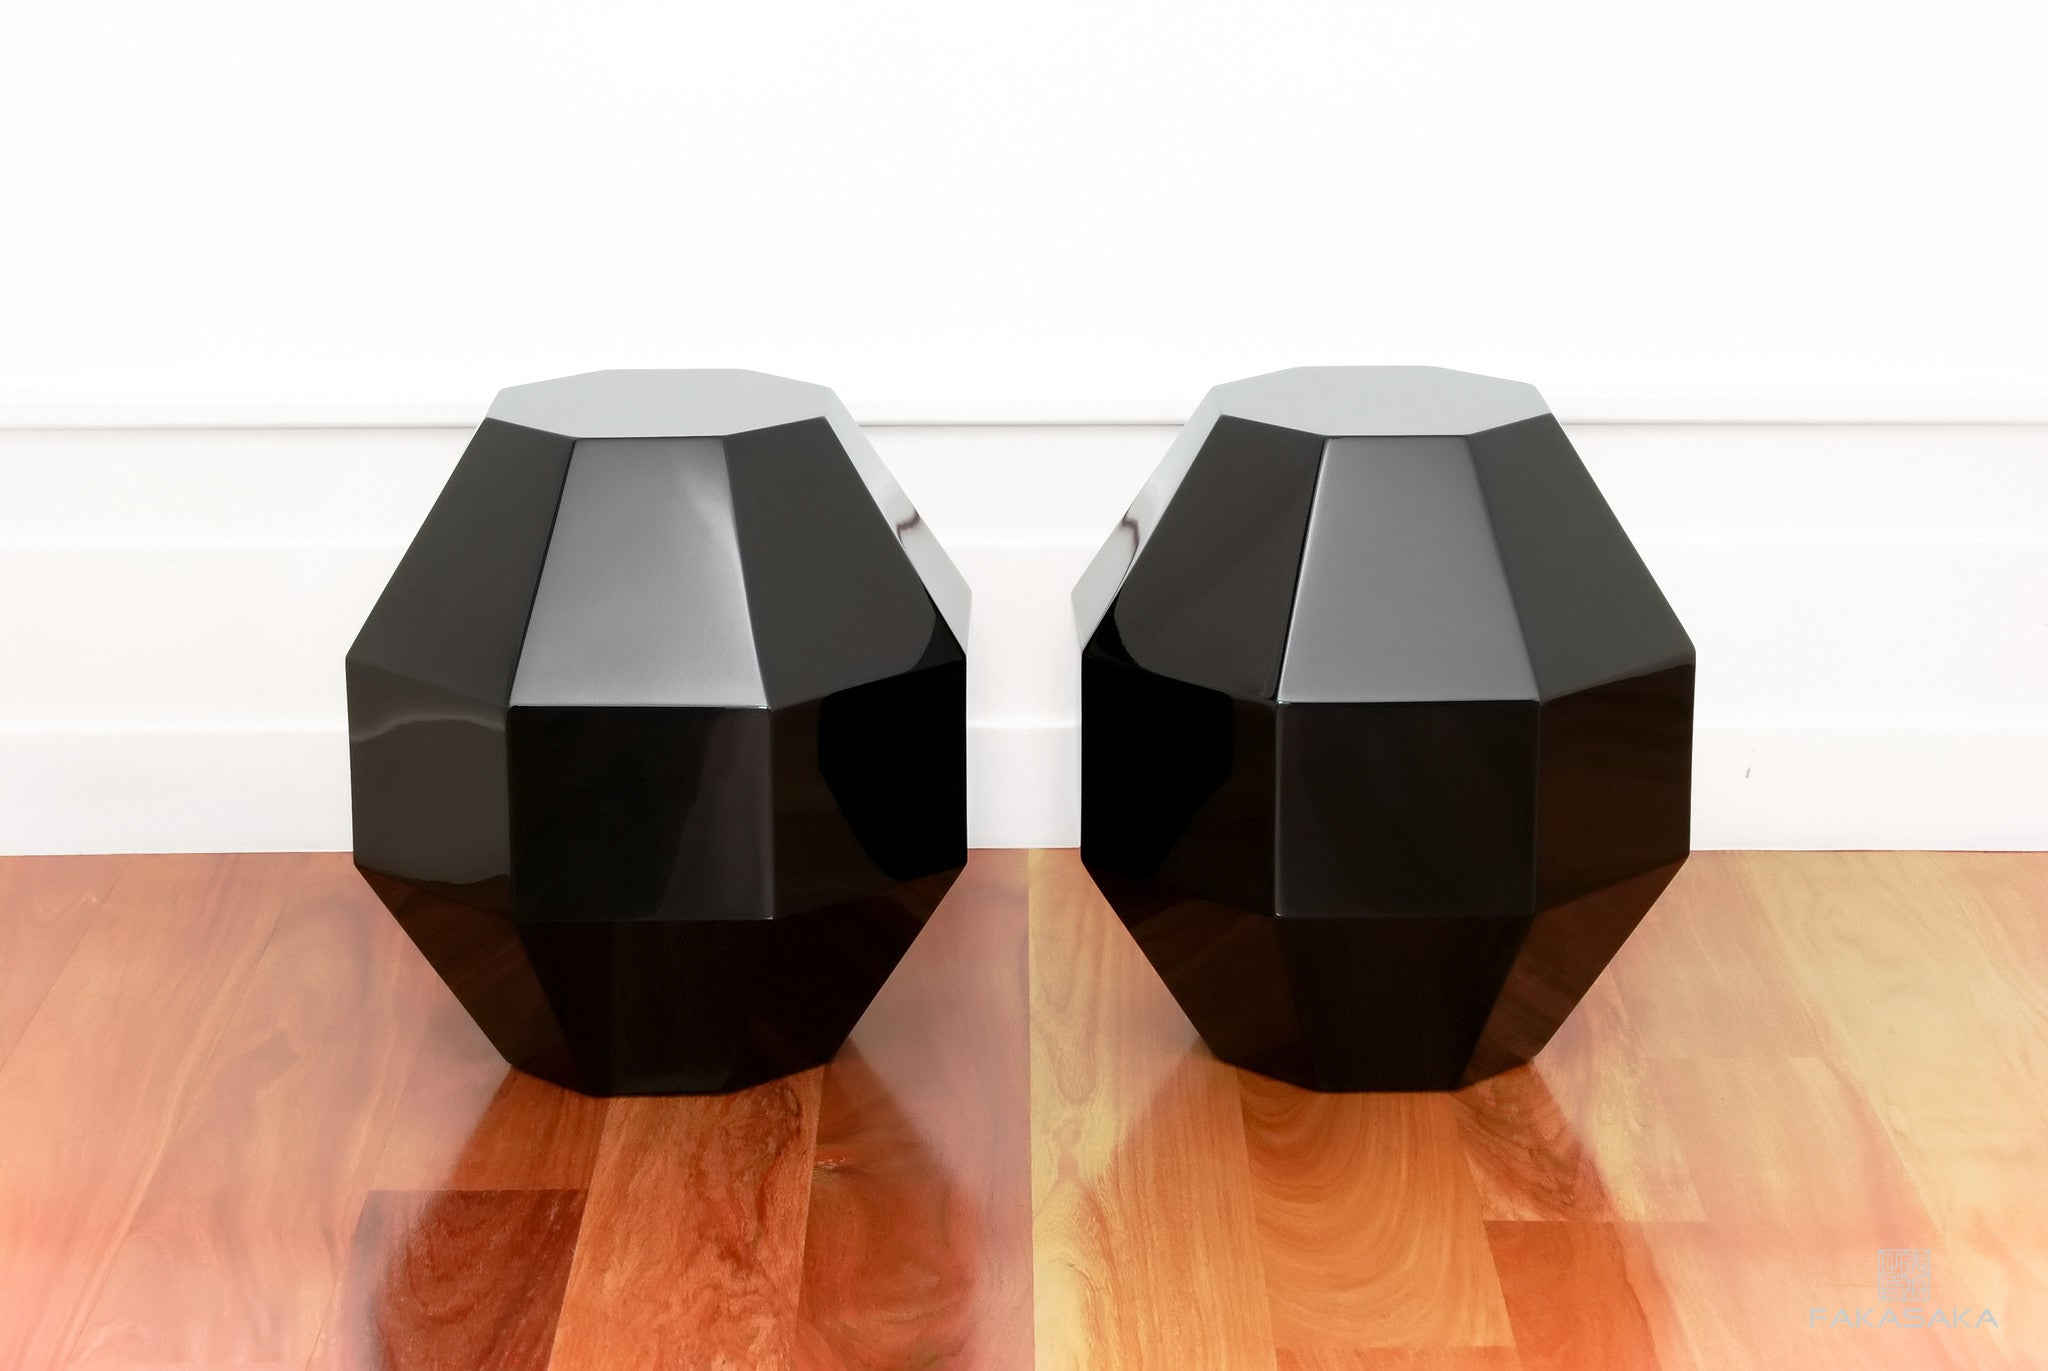 FA19 STOOL / SIDE TABLE / DRINK TABLE<br><br>LACQUER BLACK